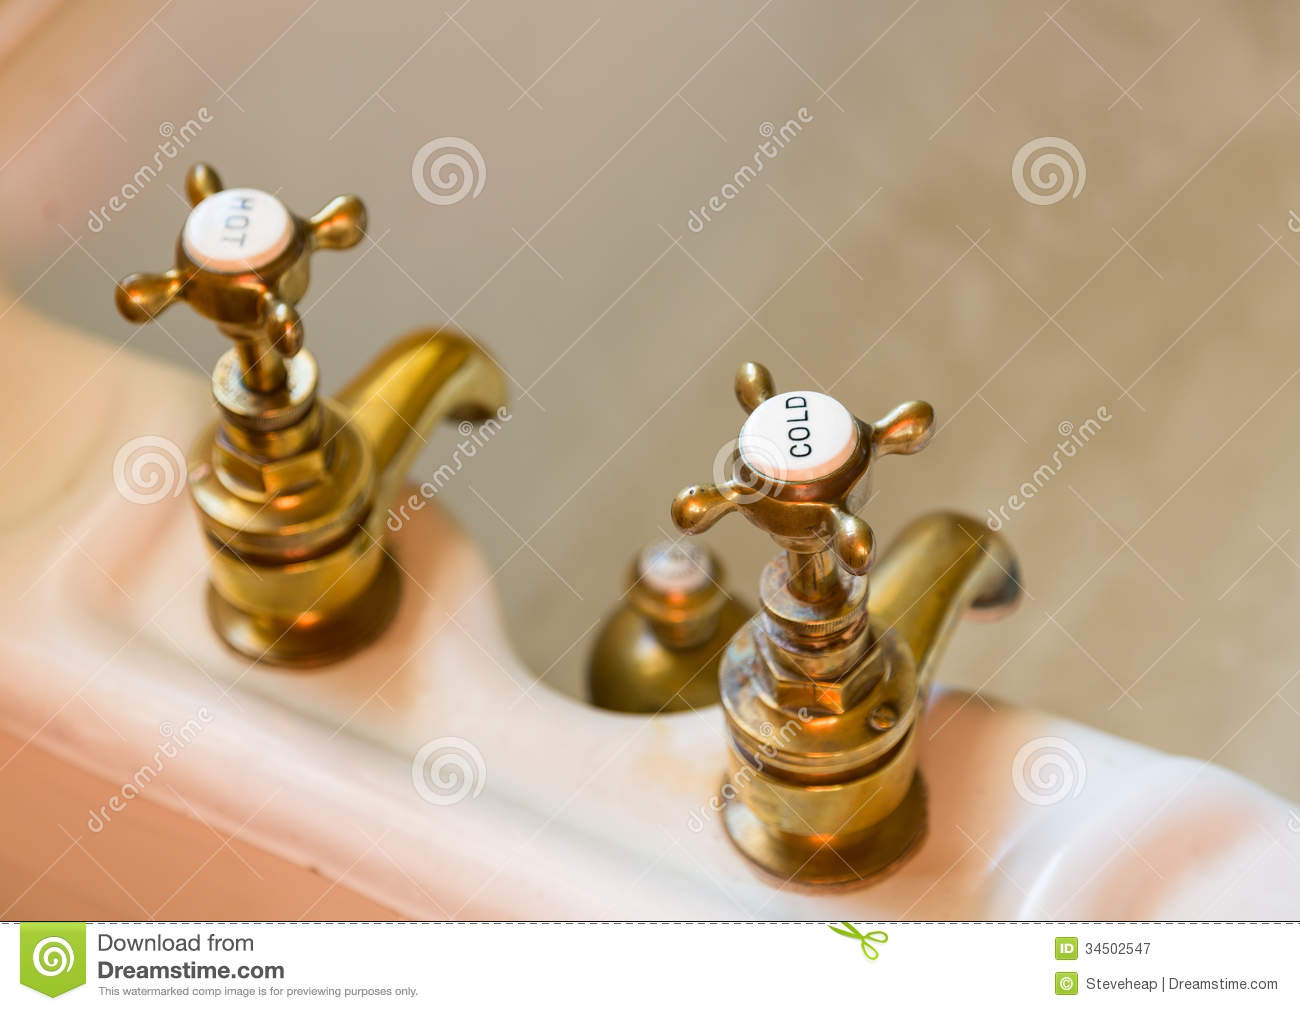 Antique bath taps or faucets. Antique Bath Taps Or Faucets Royalty Free Stock Photography